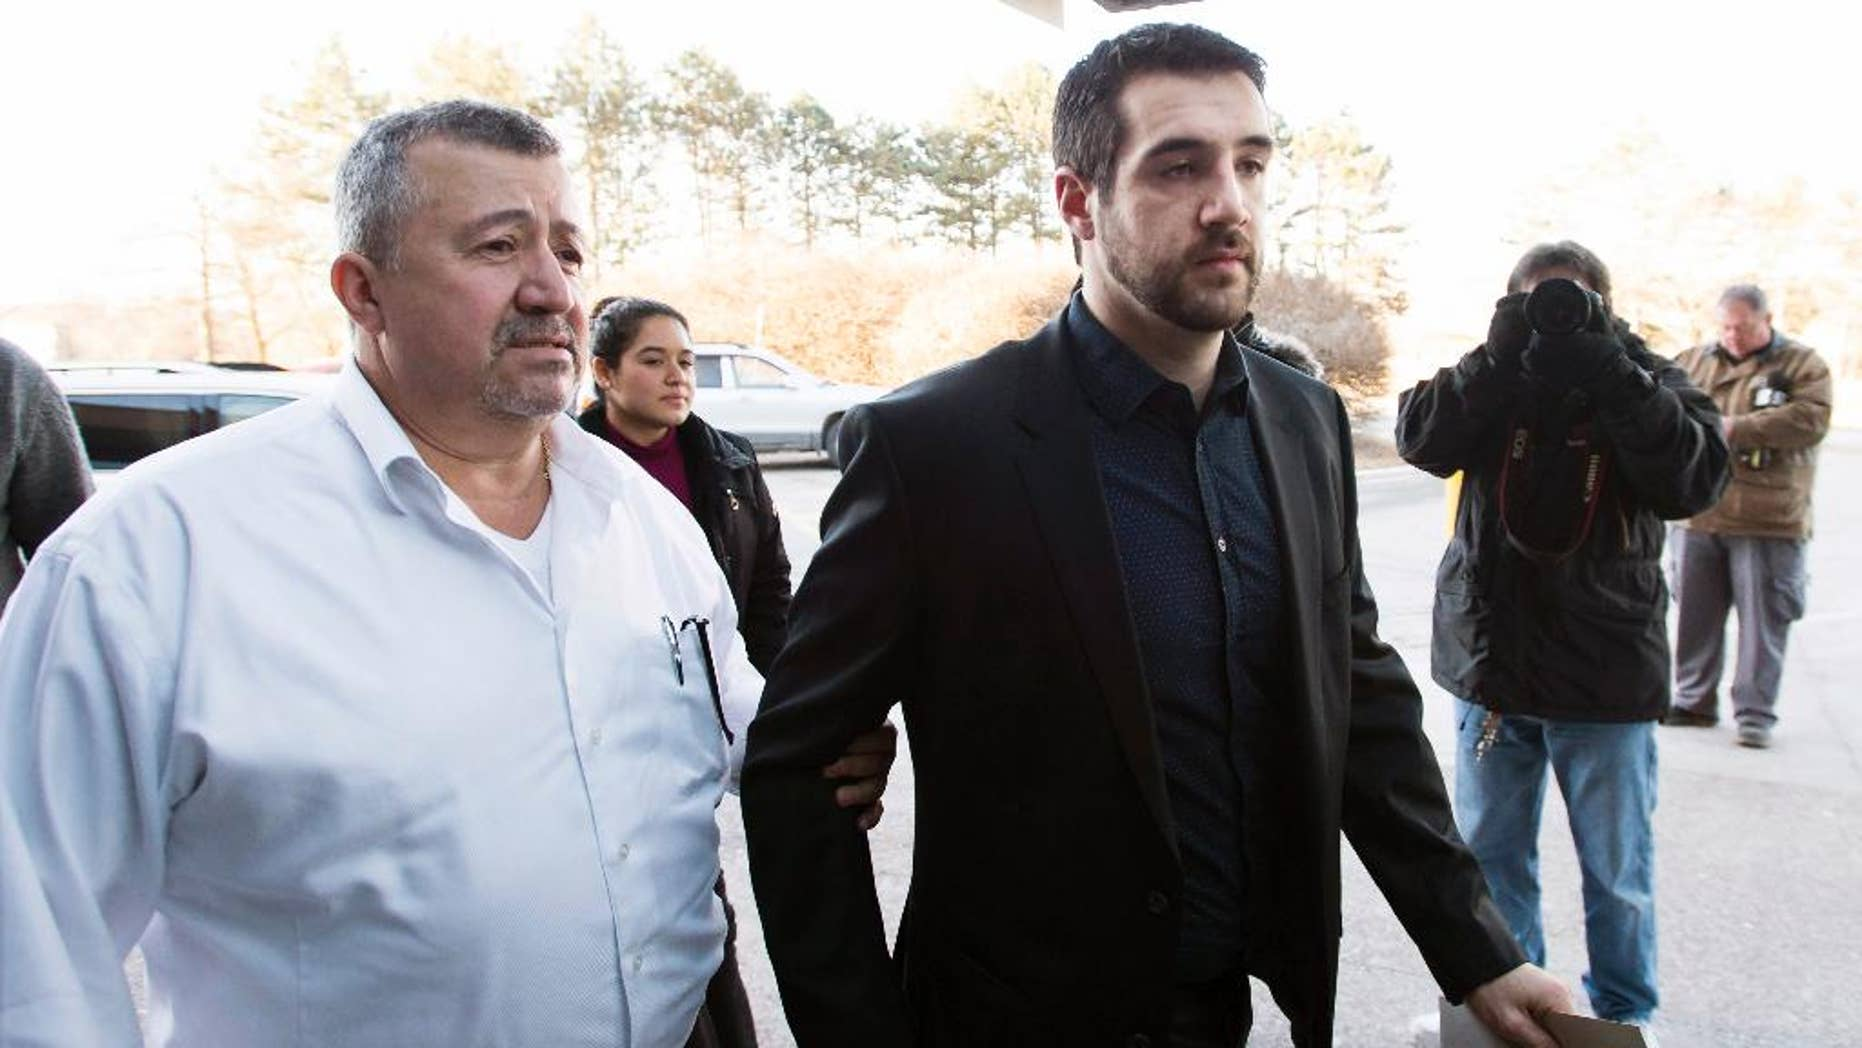 FILE - In this Feb. 23, 2016 file photo, Marco Muzzo, right, arrives with family at the court house for his sentencing hearing in Newmarket, Ontario. A judge has sentenced Muzzo to 10 years in prison for killing three young children and their grandfather while driving drunk.(Nathan Denette/The Canadian Press via AP) MANDATORY CREDIT